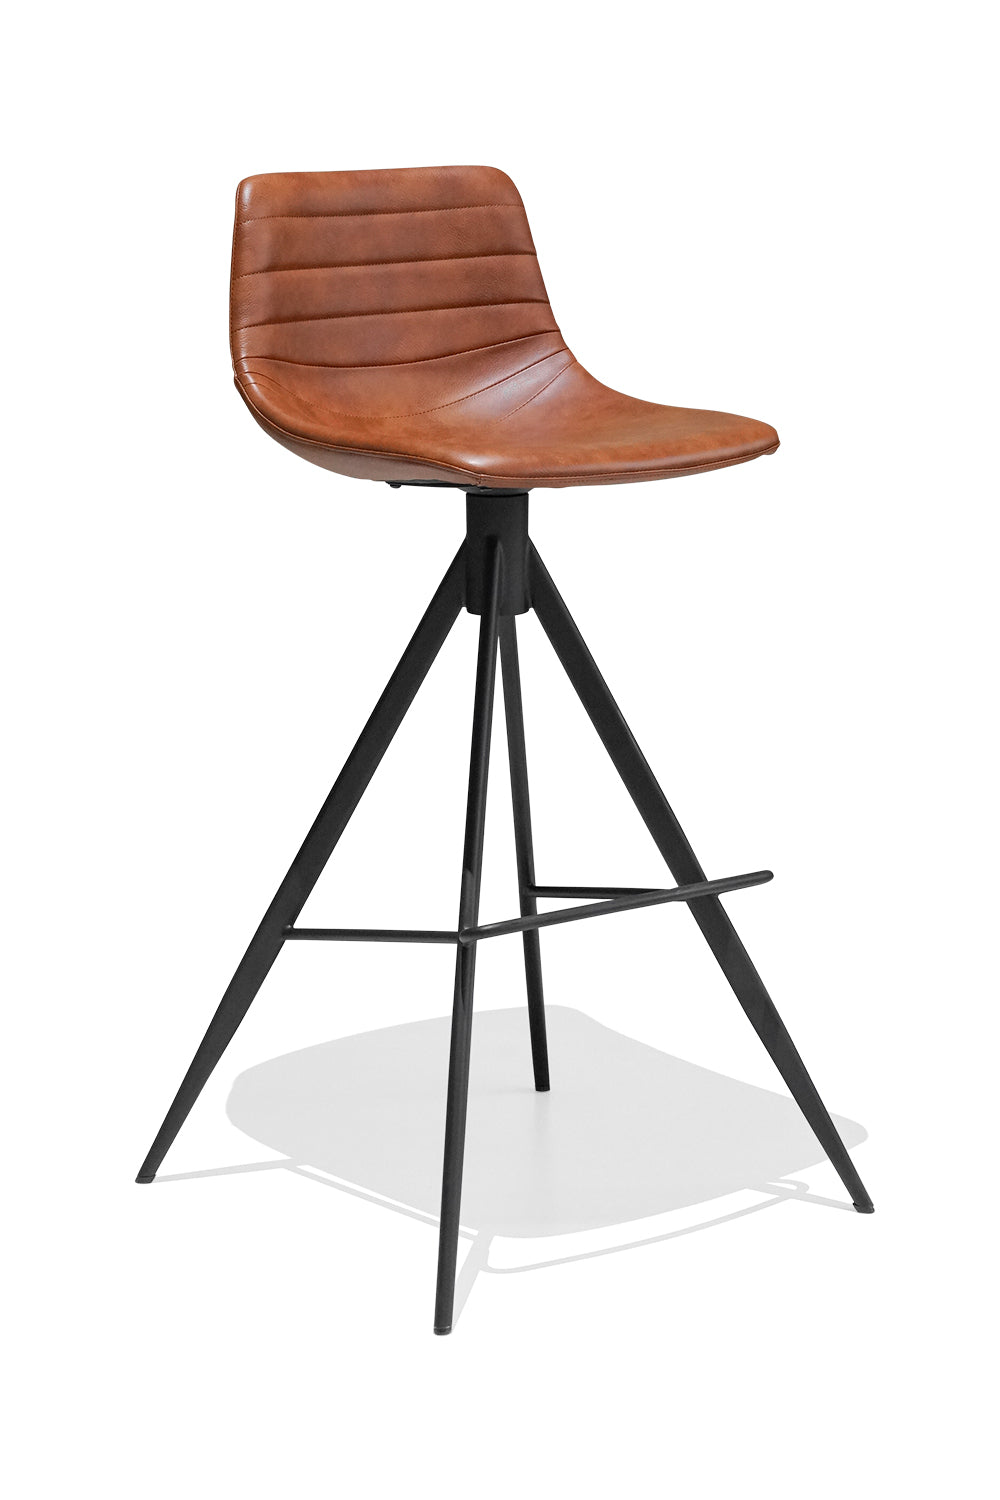 DANUBE bar stool